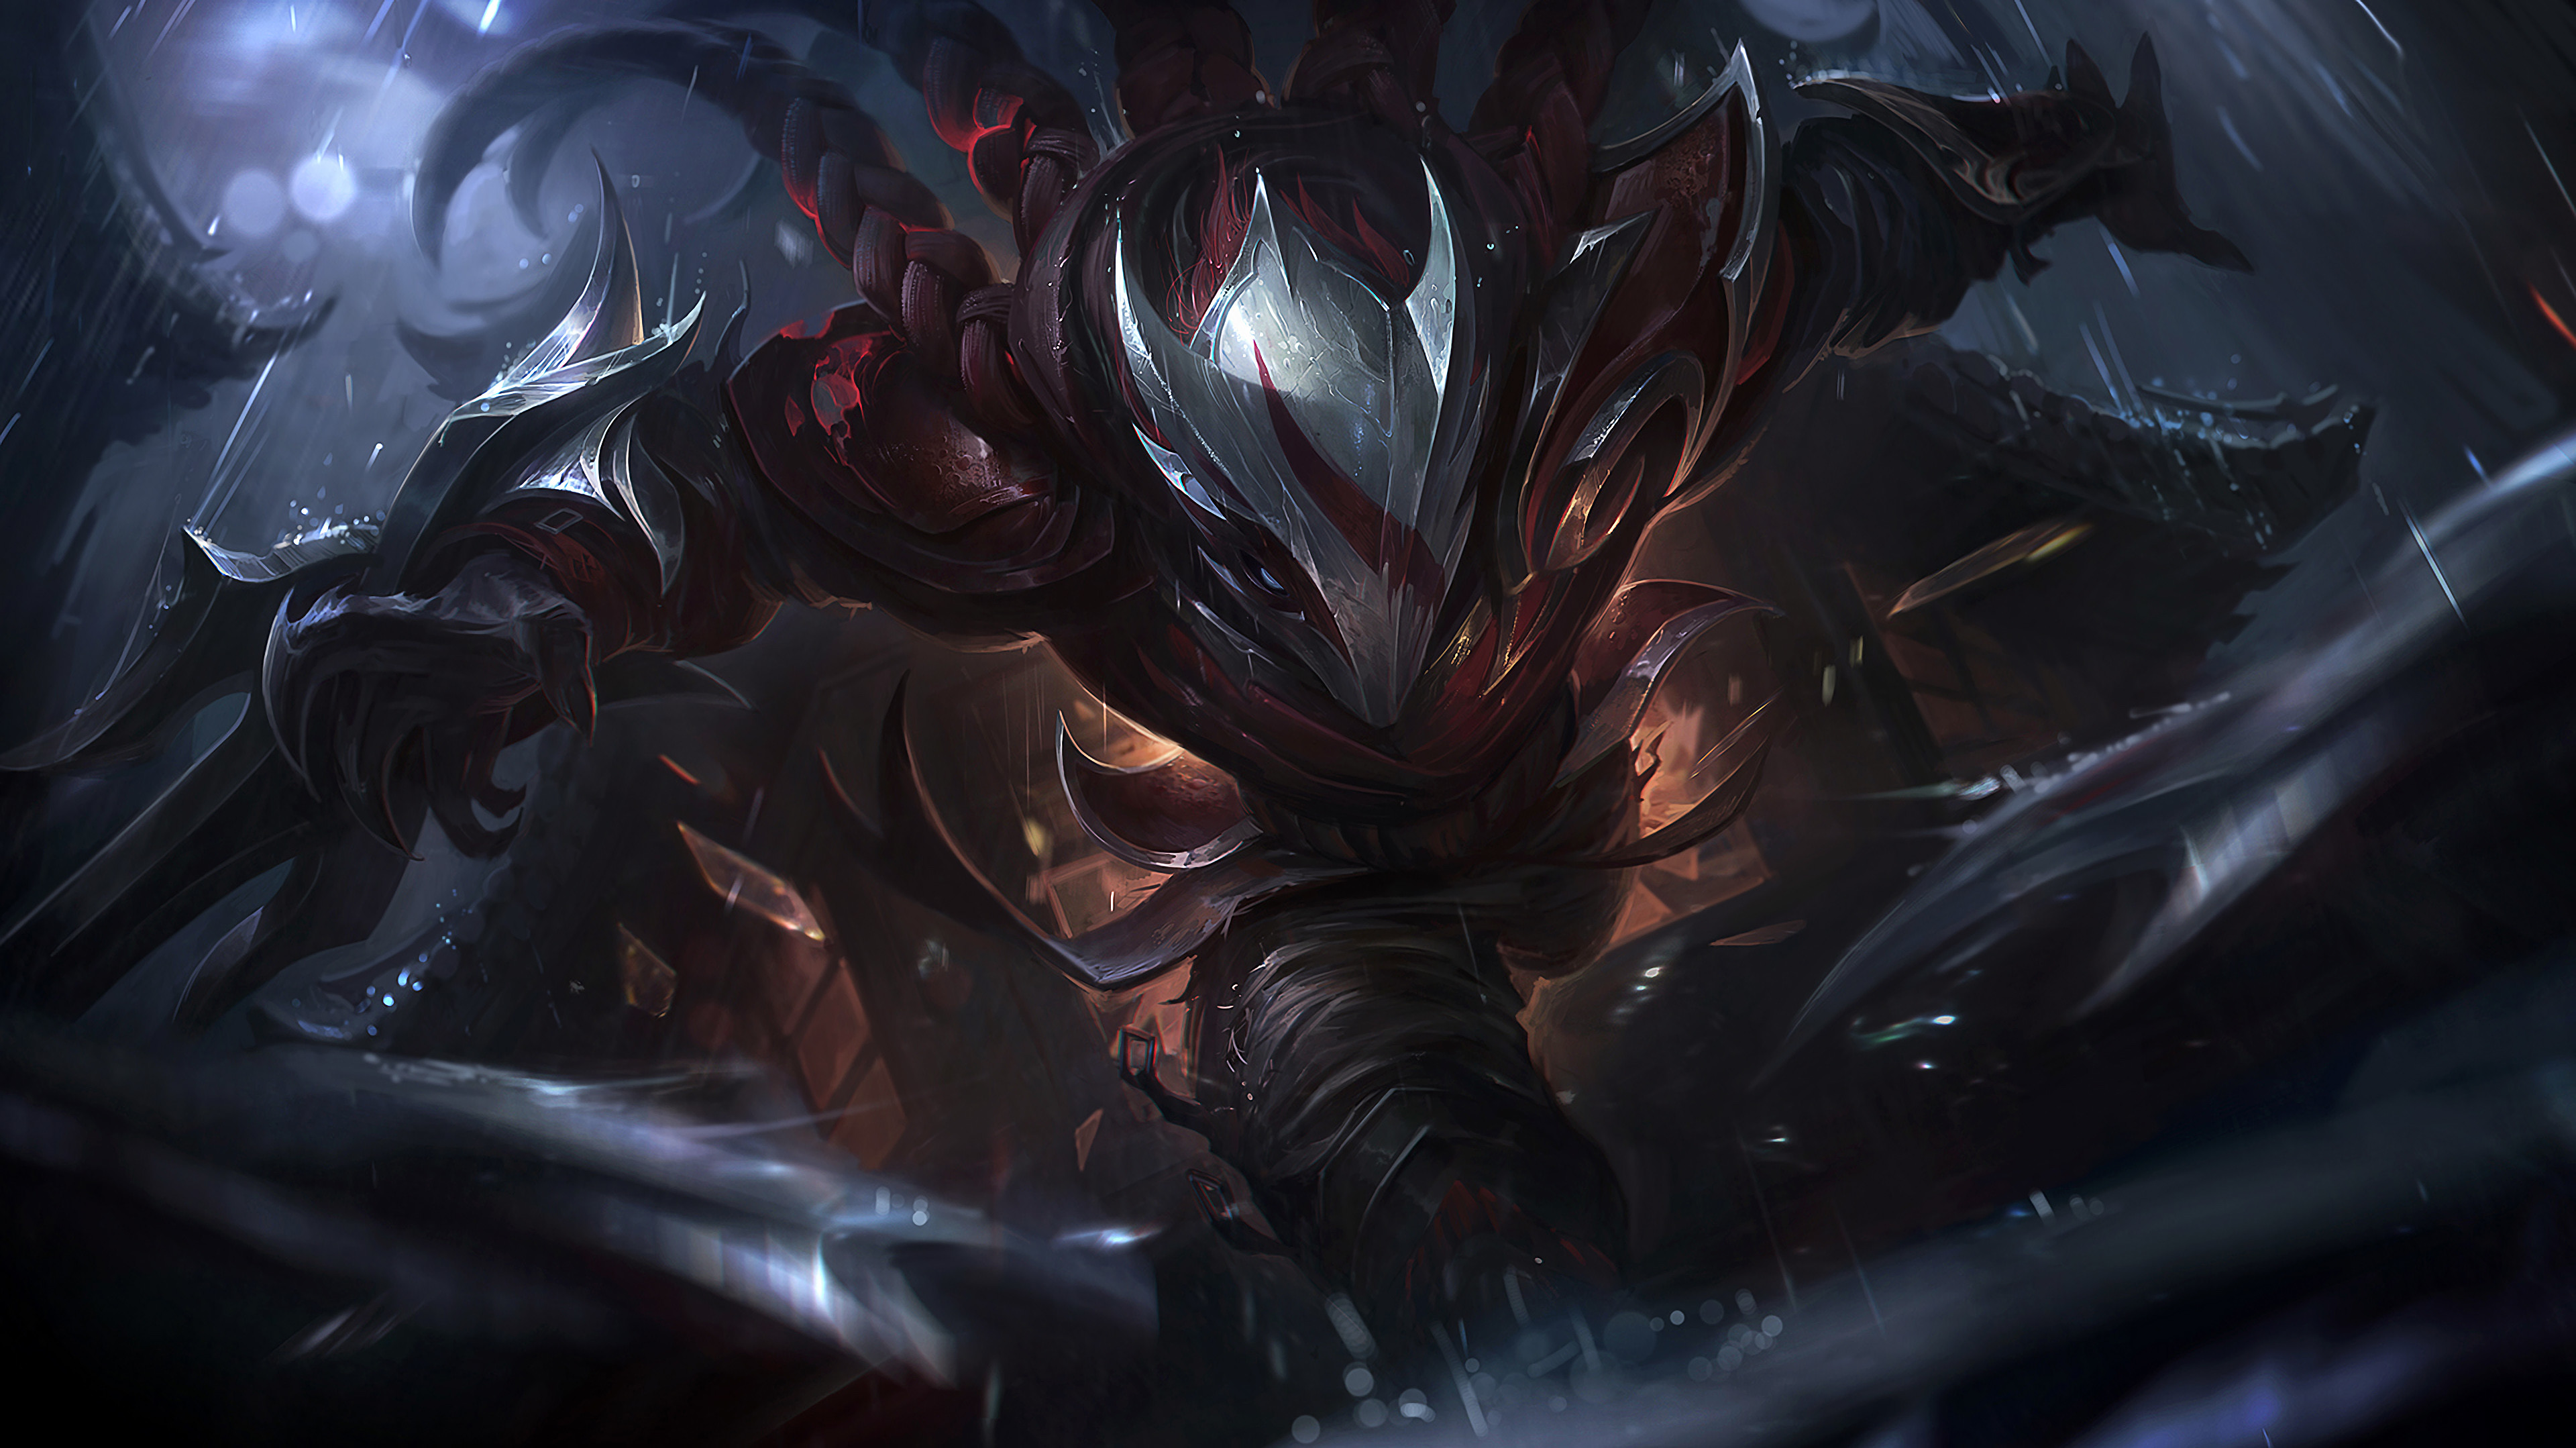 … Talon   LoL Wallpapers HD Wallpapers amp Artworks for League of .